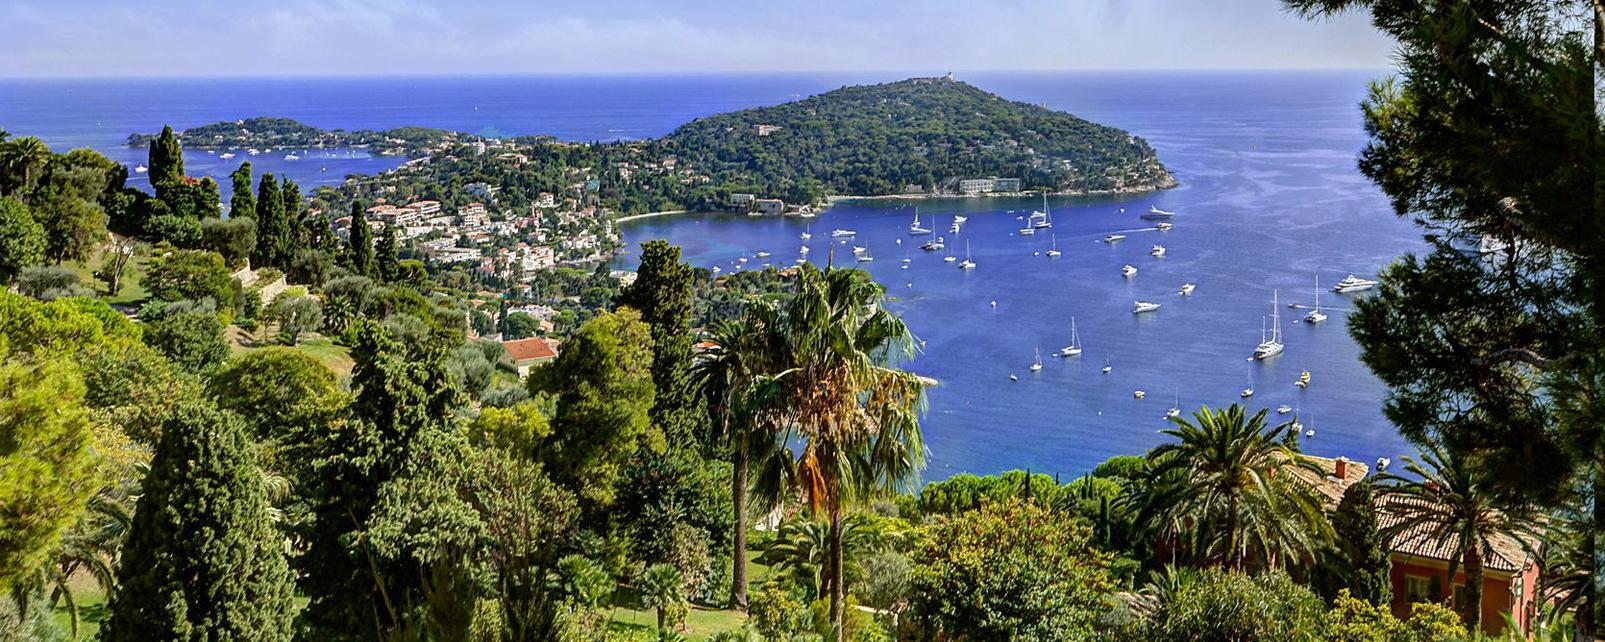 Weather forecast st jean cap ferrat in june best time to go - Weather forecast st jean pied de port france ...